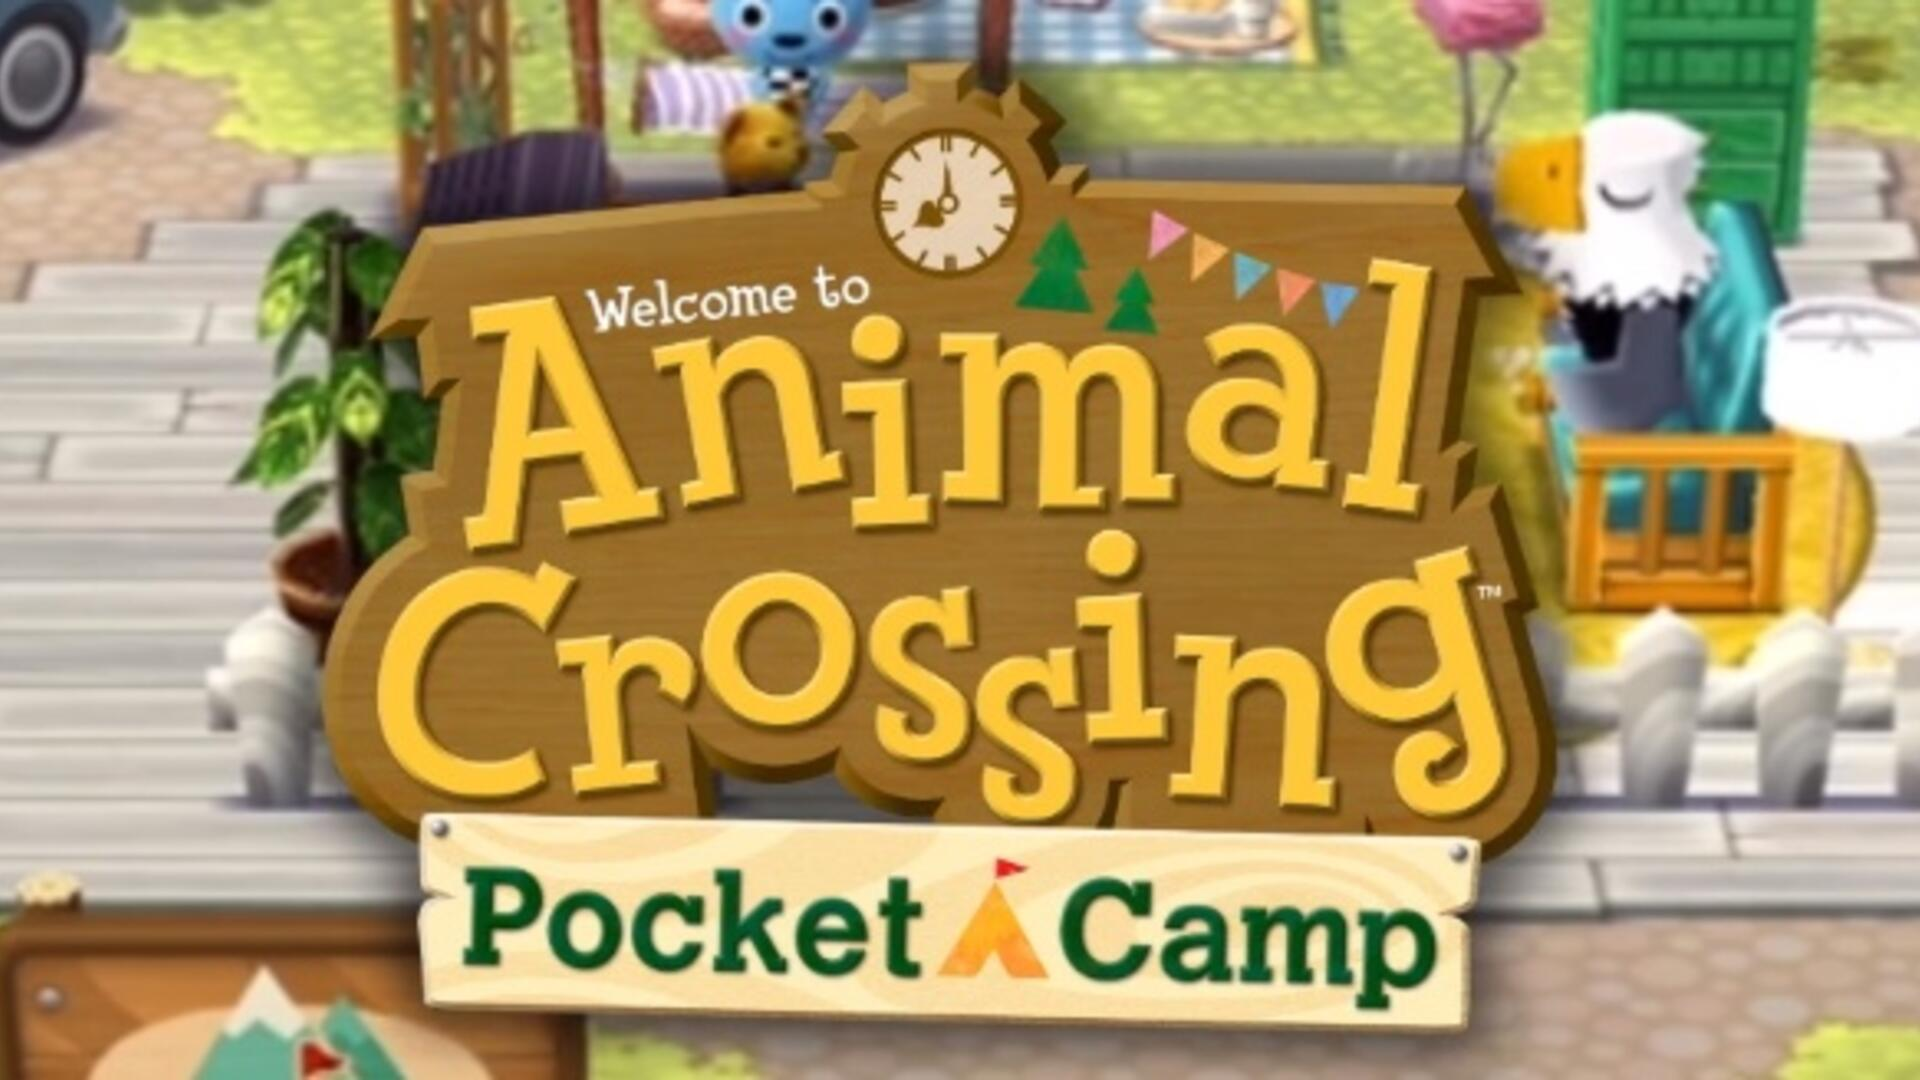 Animal Crossing Pocket Camp Release Date, Loans, Microtransactions, Crafting - Everything We Know